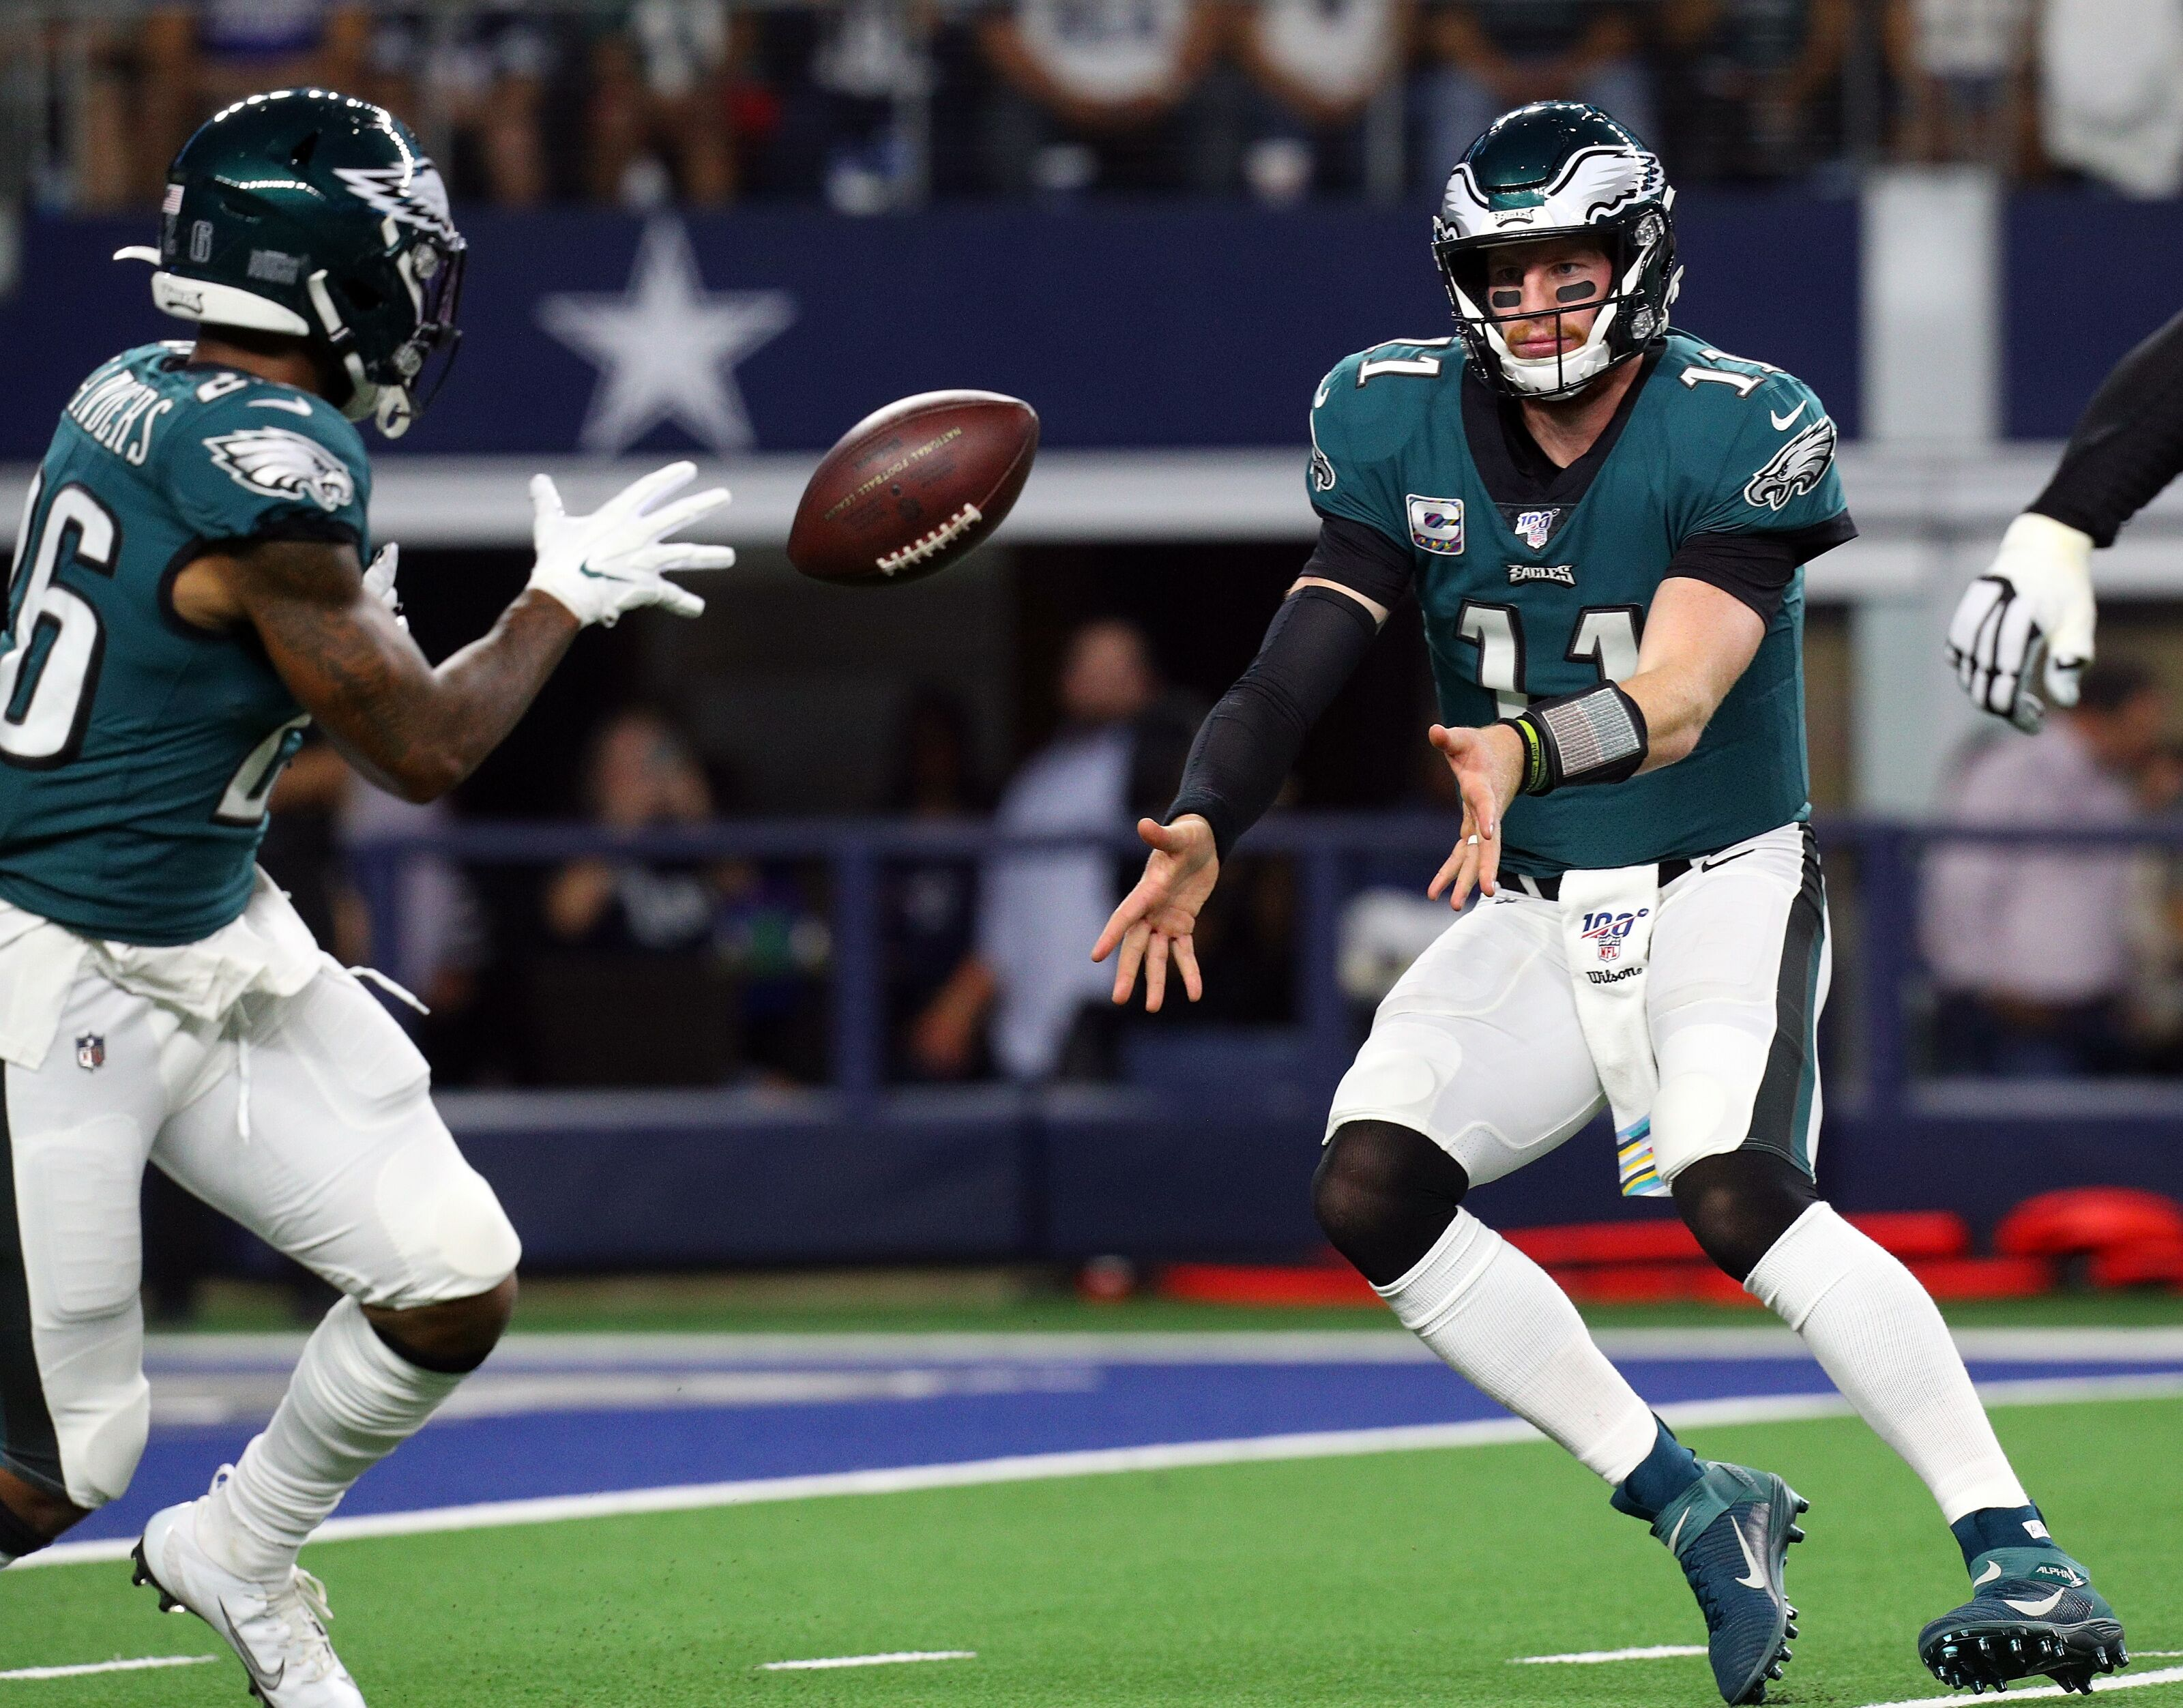 2 Cool comments Miles Sanders made on Carson Wentz. Doug Pederson